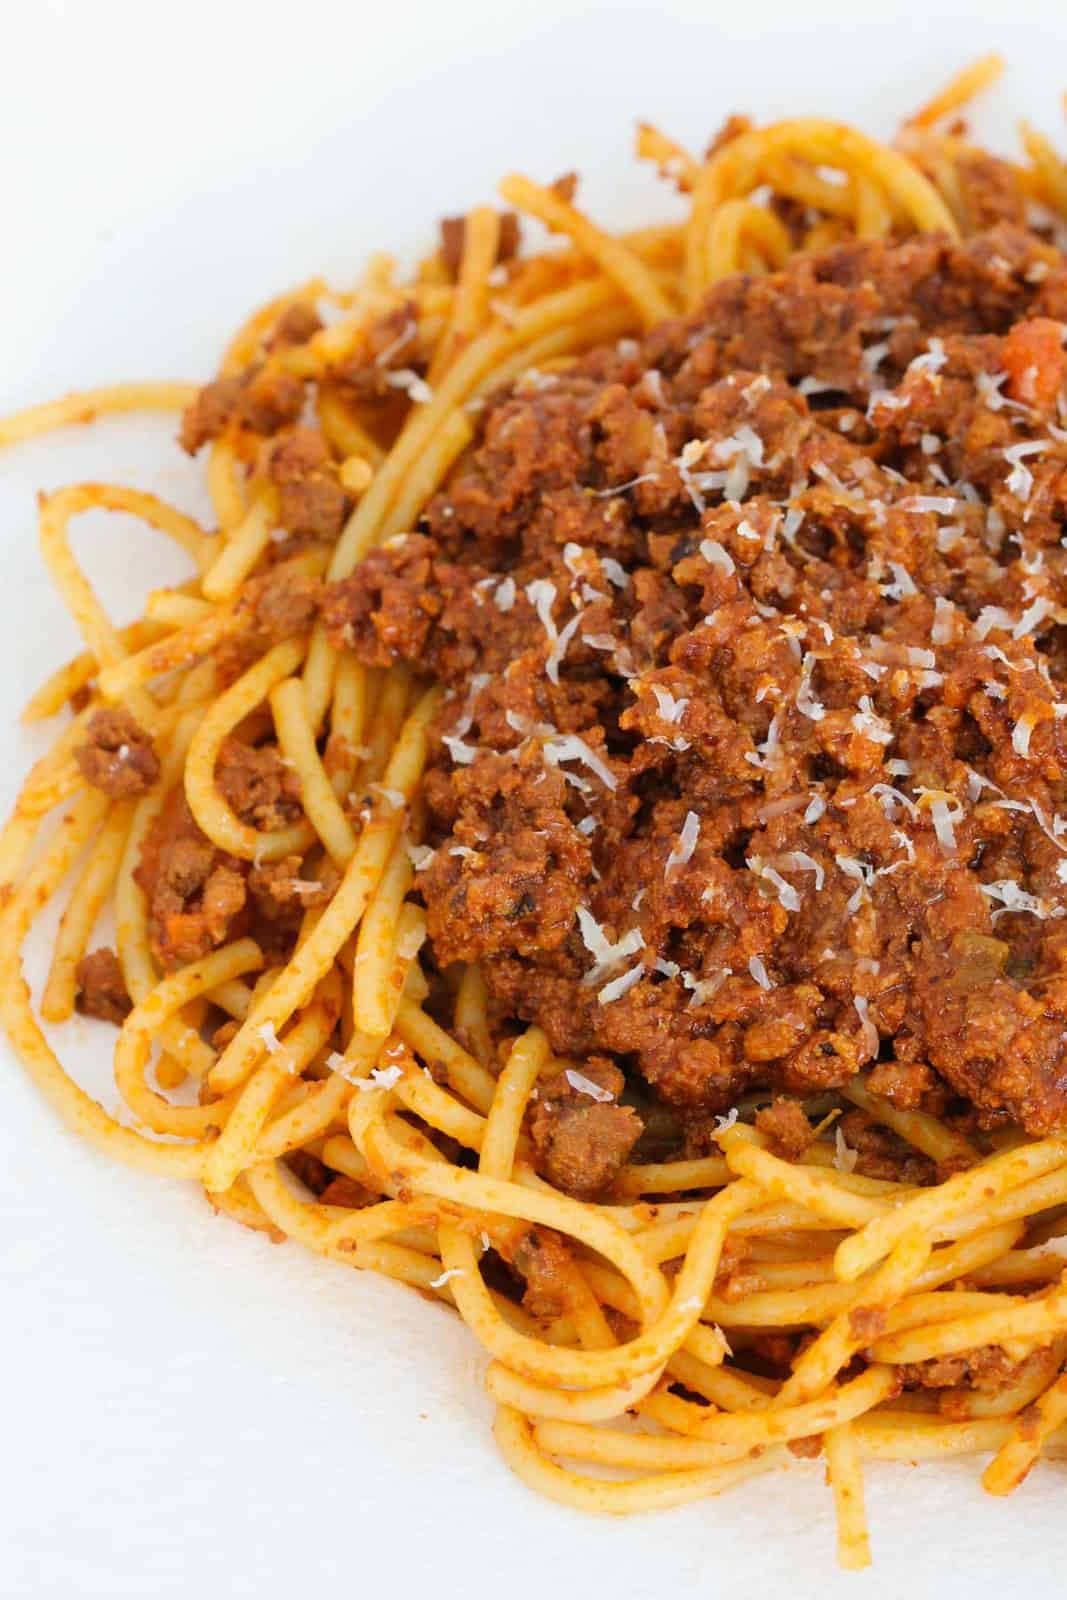 An overhead shot of a plate filled with pasta and meat sauce, with grated parmesan sprinkled over the top